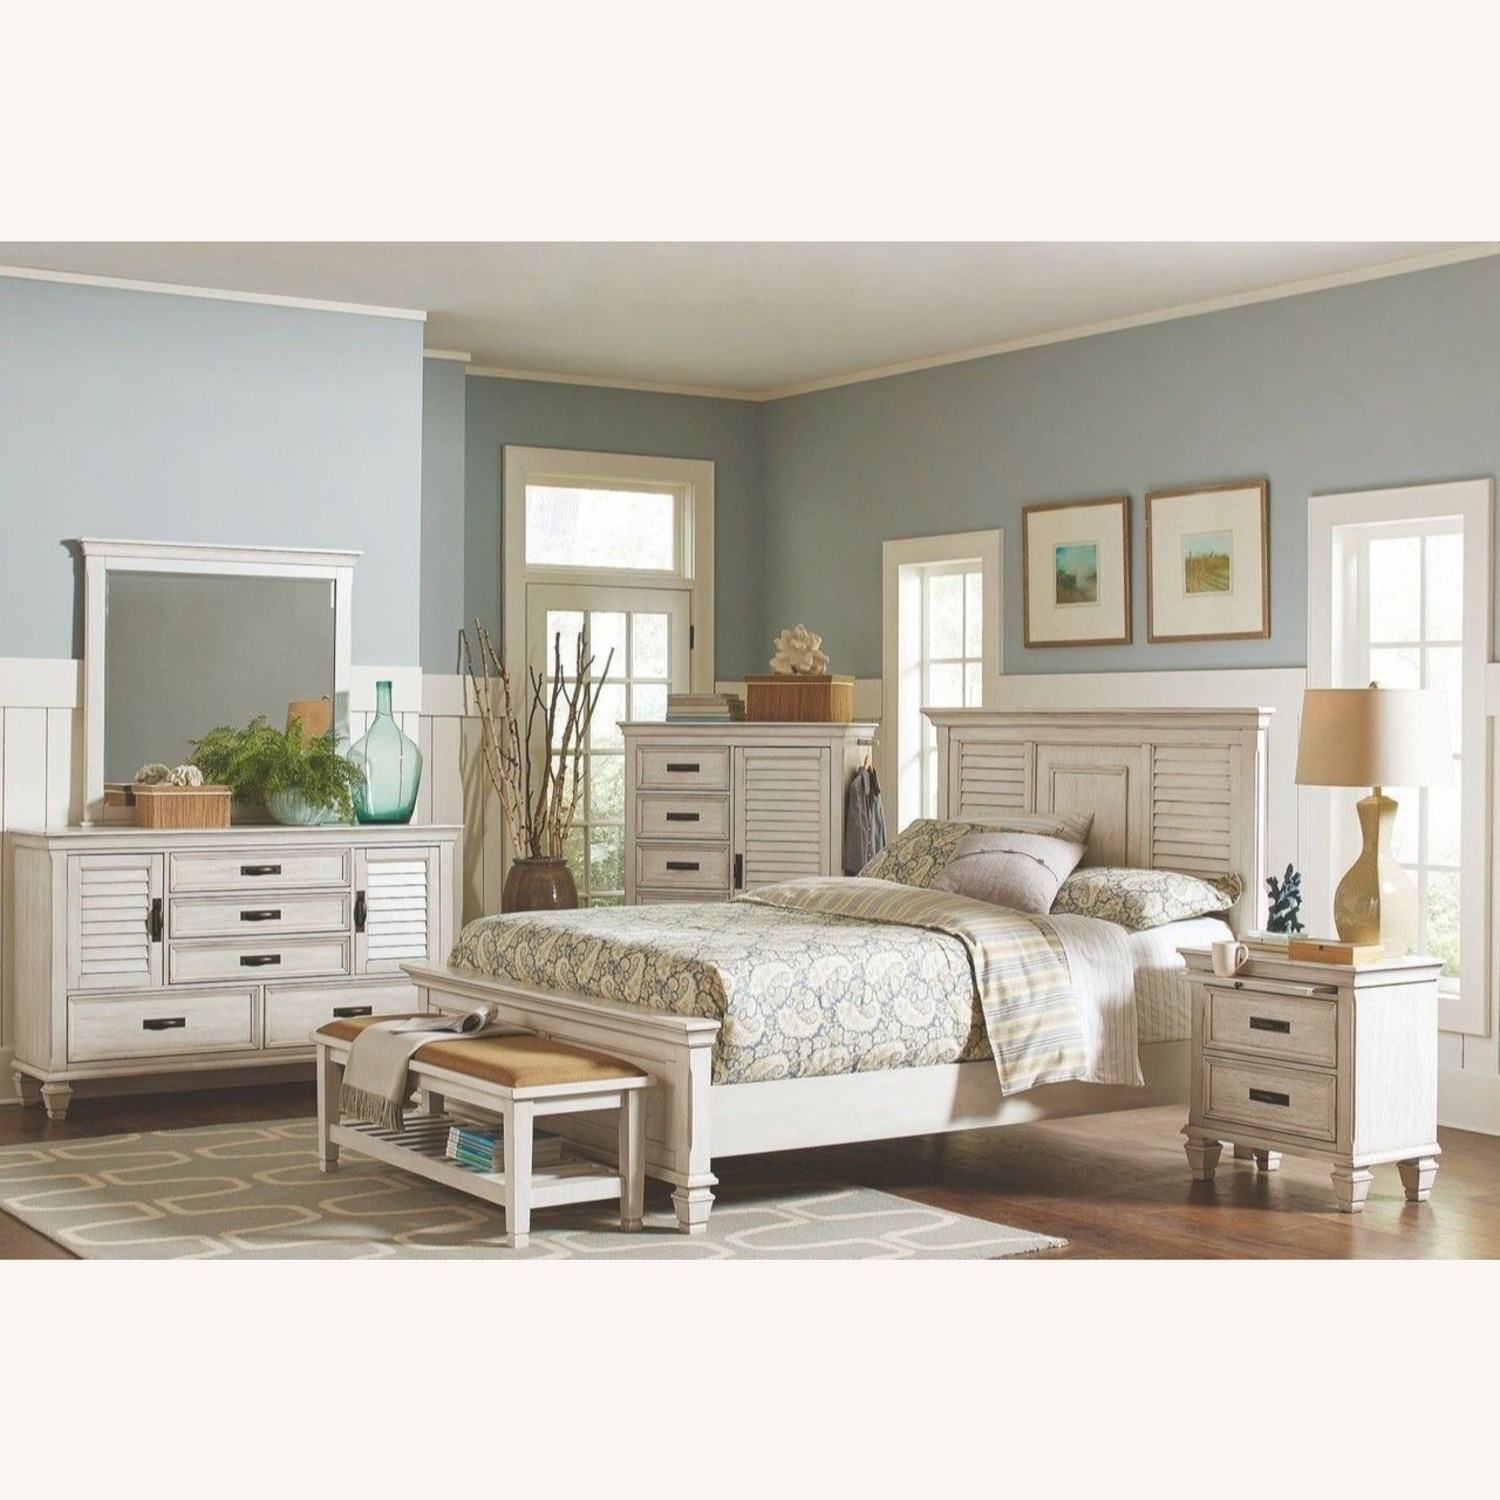 Bench In Antique White Finish W/ Brown Fabric - image-3